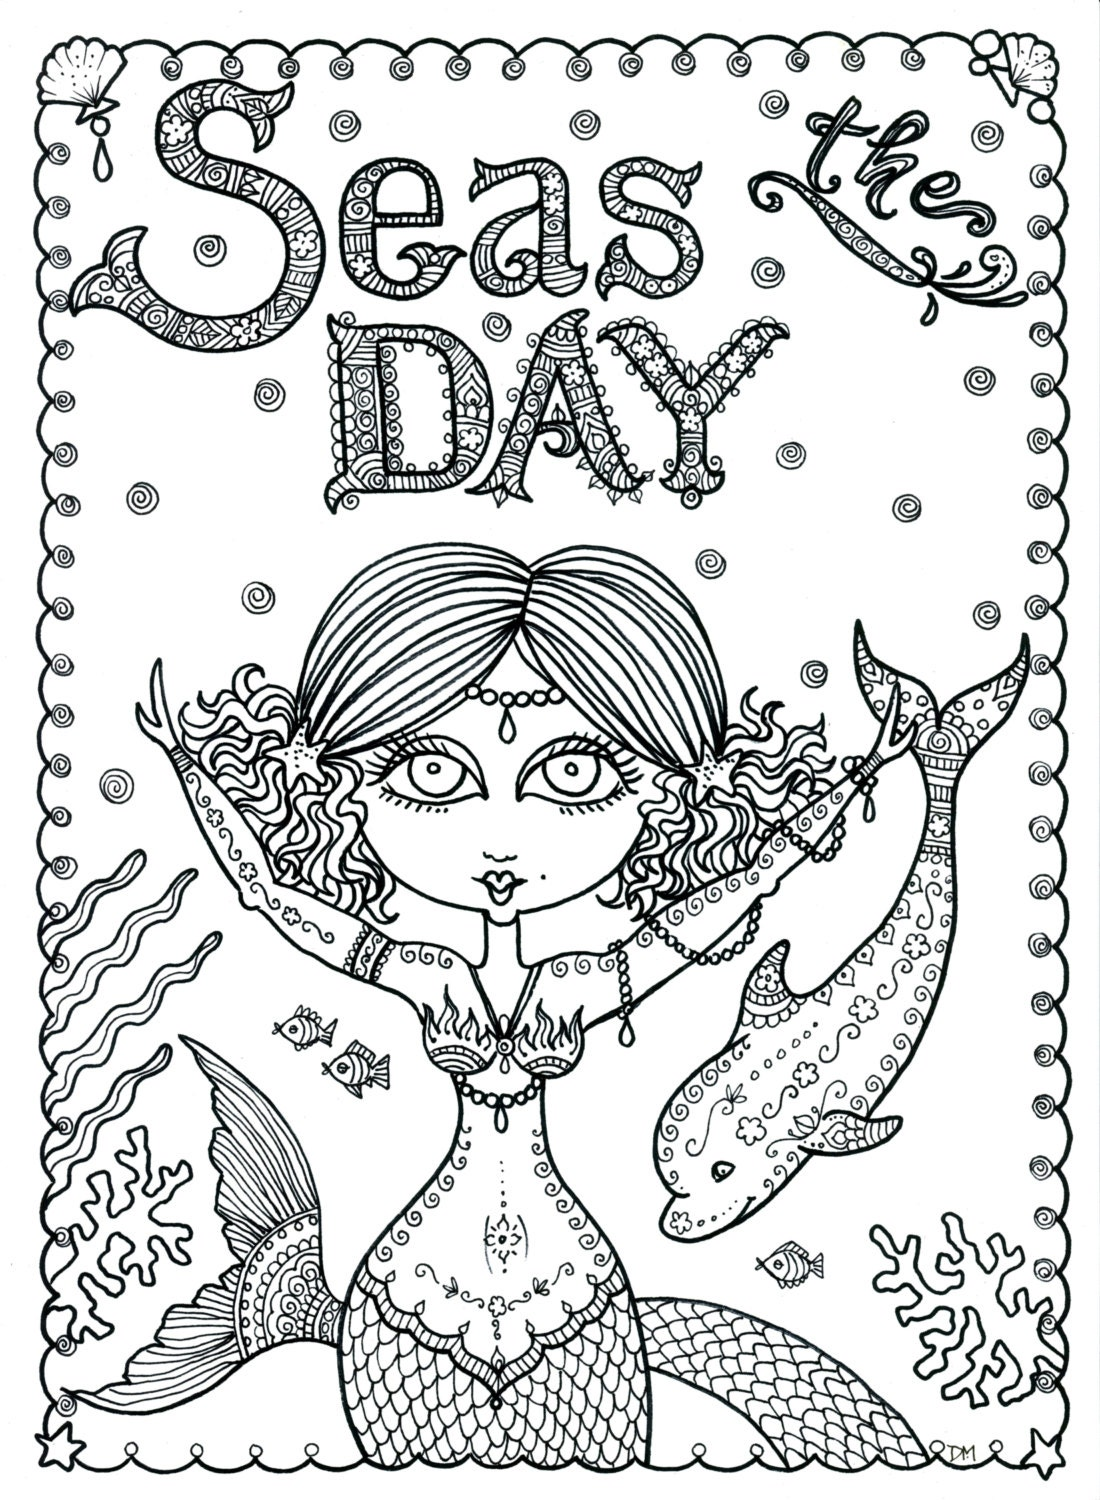 Seas The Day Instant Download Coloring Page Book Art Adult